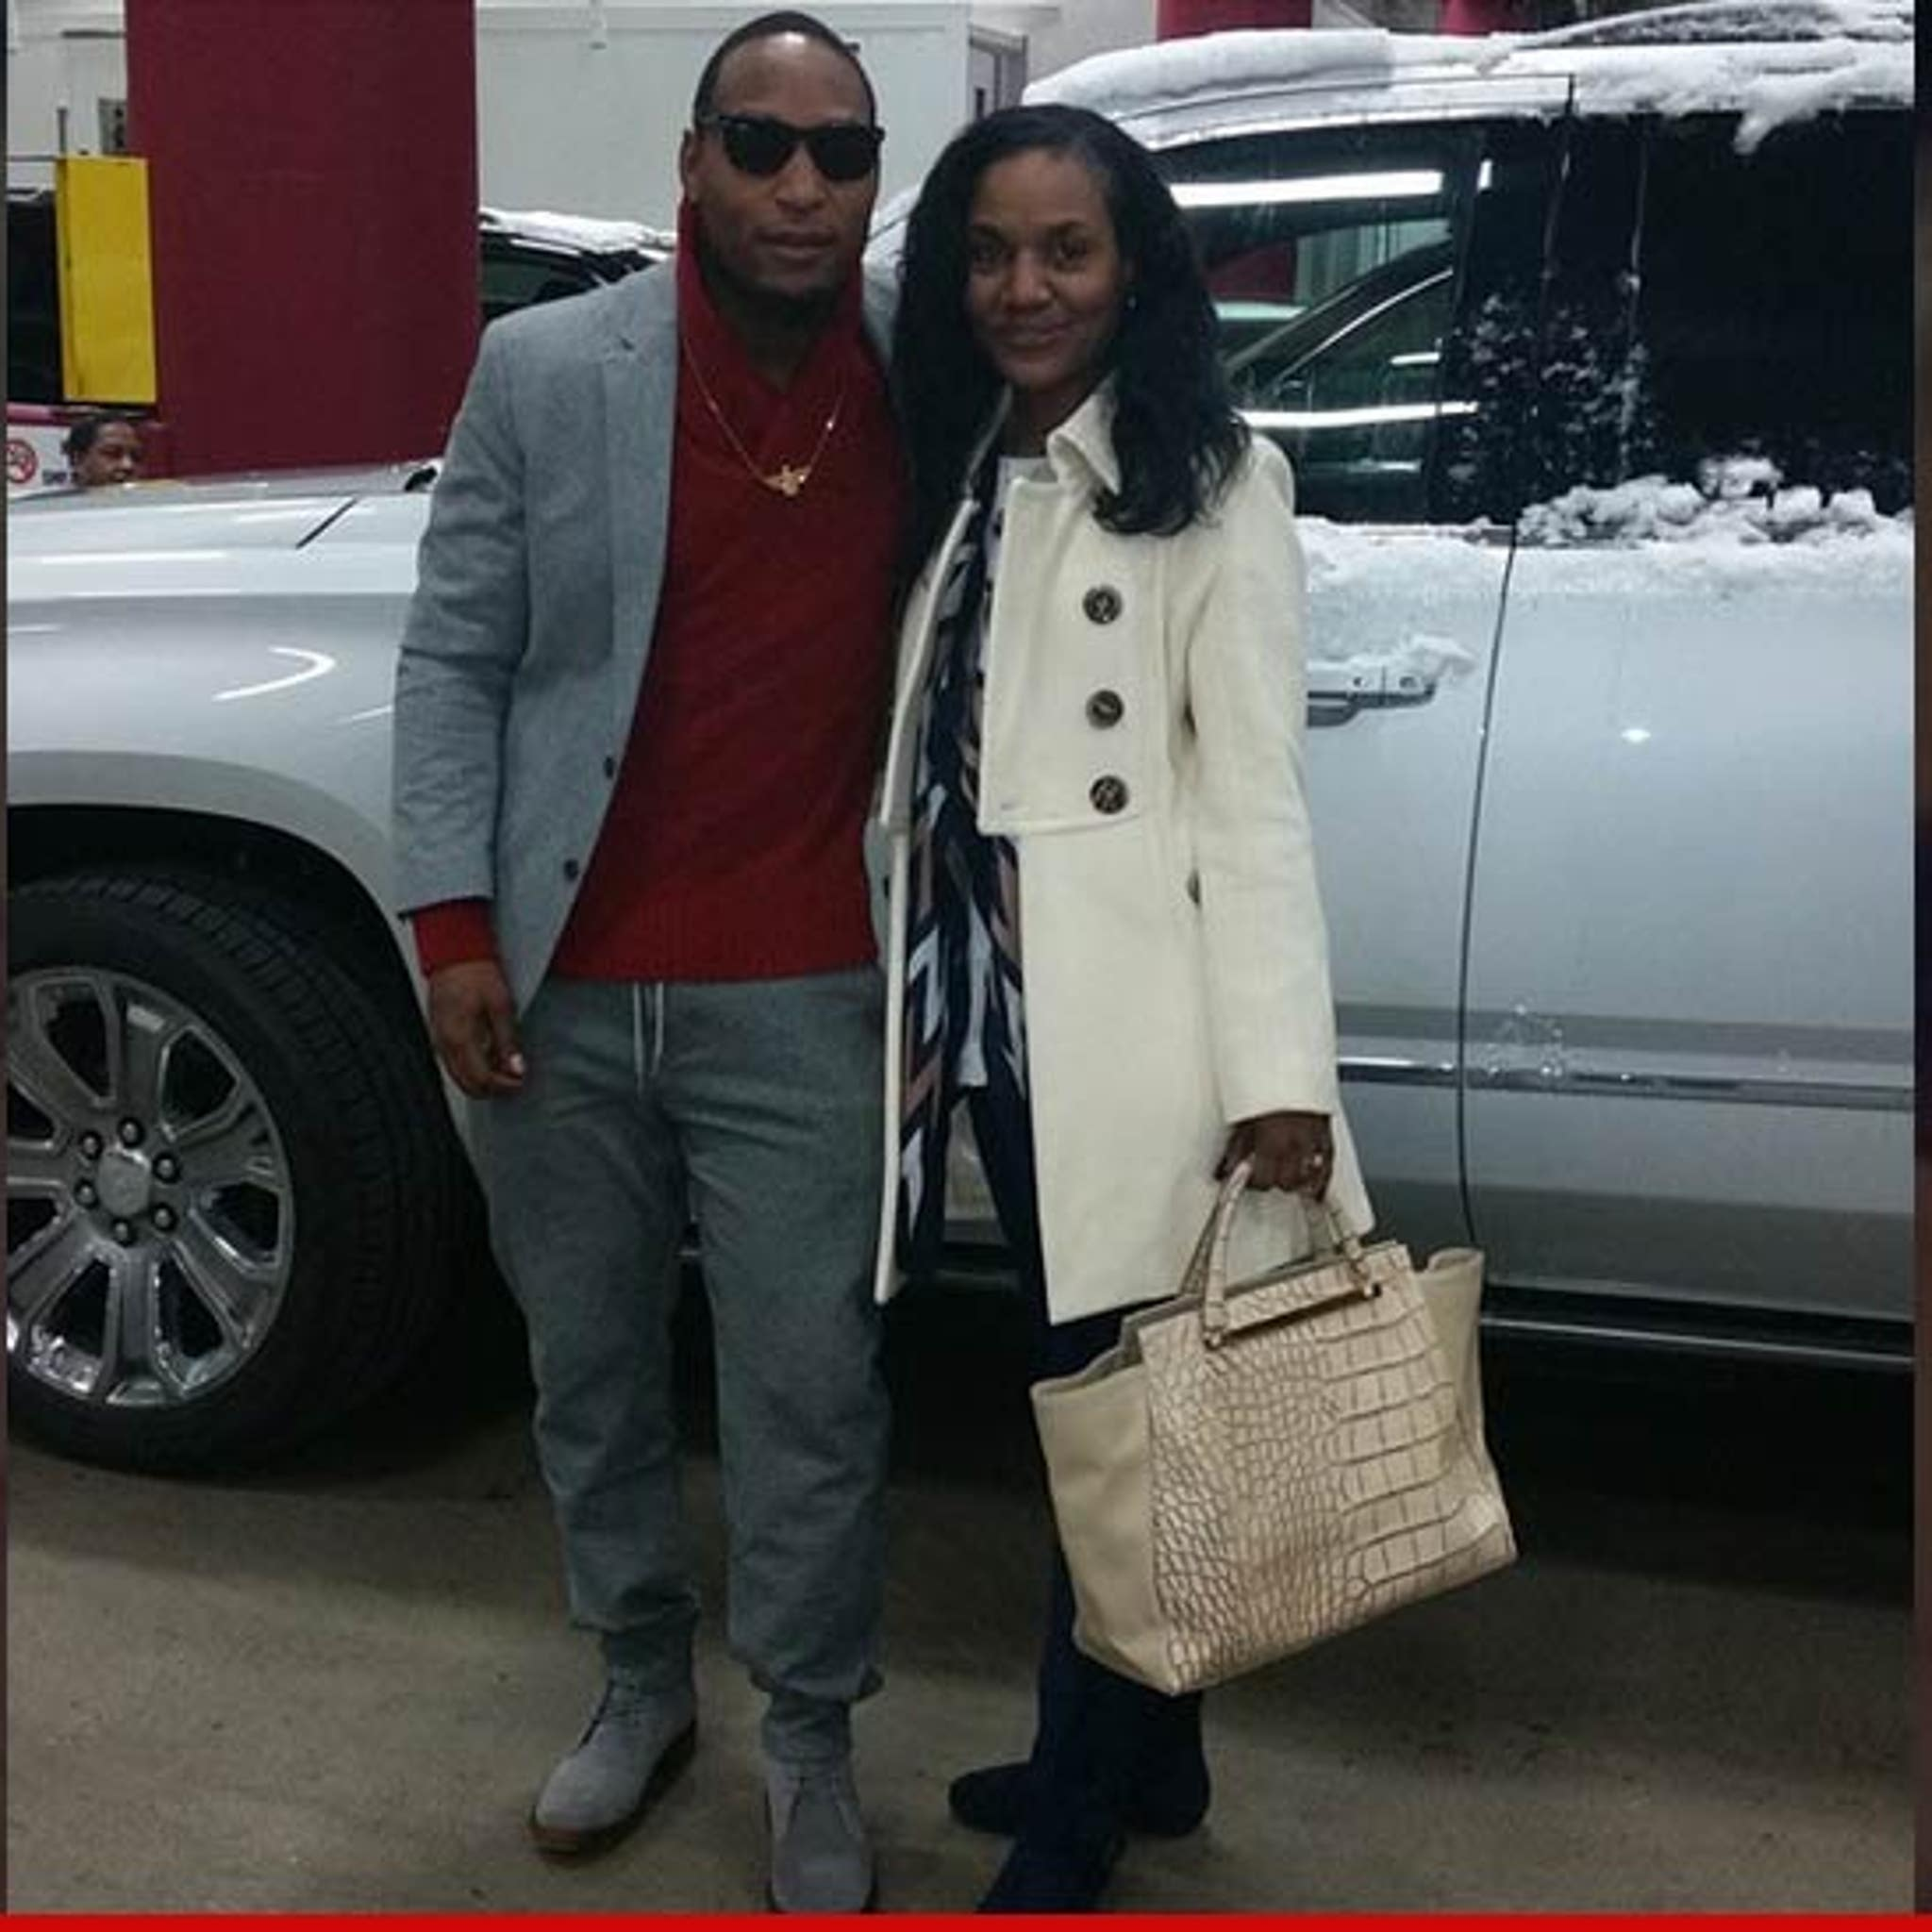 lebron james i m cool with my mom s 32 year old bf lebron james i m cool with my mom s